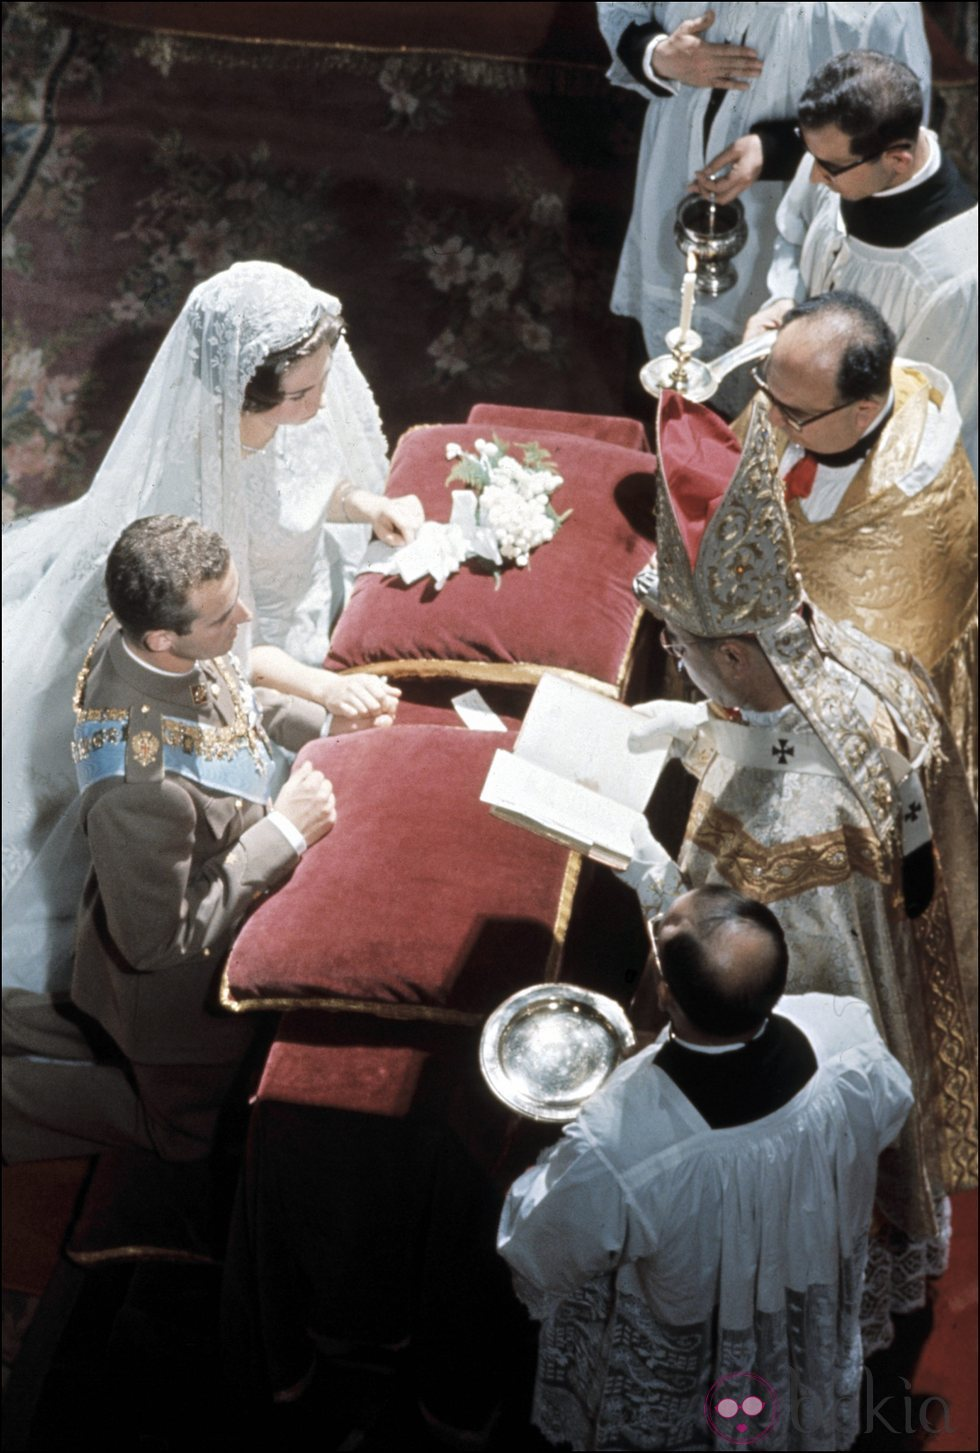 50 years ago today, Prince Juan Carlos and Princess Sophia married three times in Athens: in a Catholic ceremony, in a civil ceremony and in a Greek Orthodox ceremony. On the photo the couple during the first ceremony, the Catholic wedding (May 14, 1962)